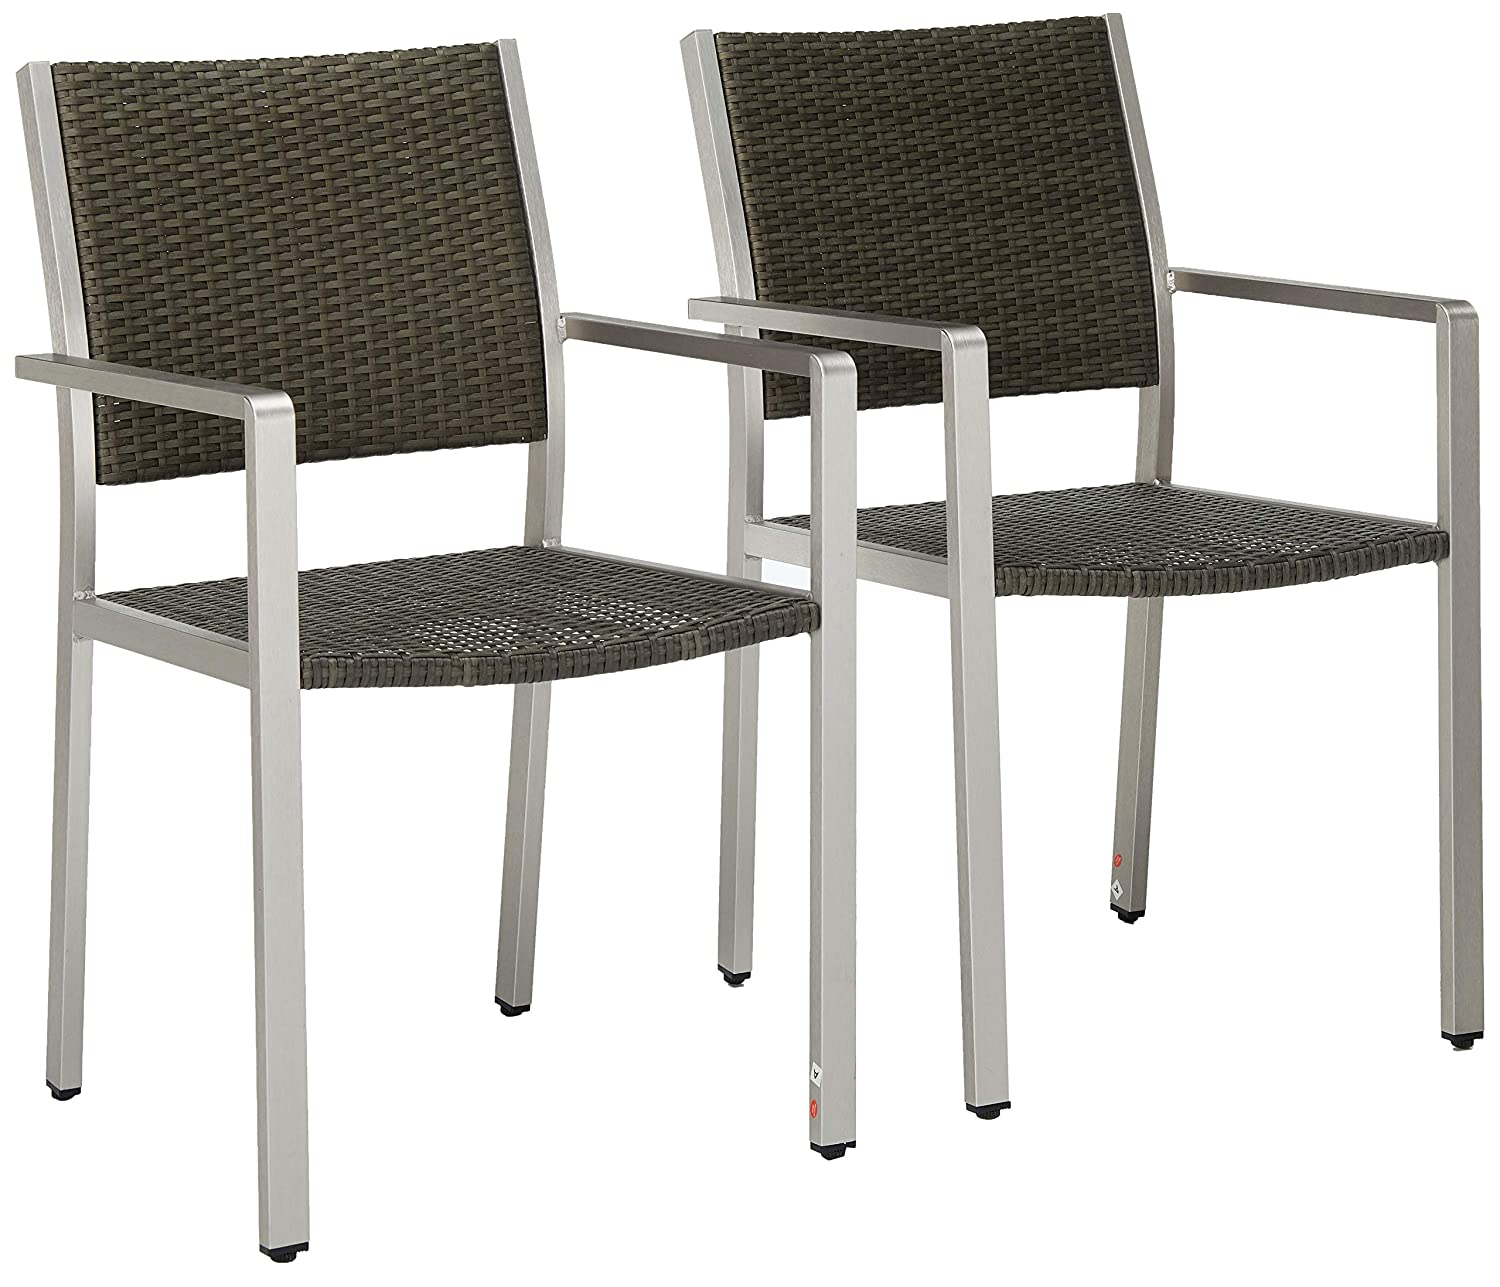 Christopher Knight Home Coral Bay Outdoor Wicker Dining Chairs w/Aluminum Frame (Set of 2), Grey